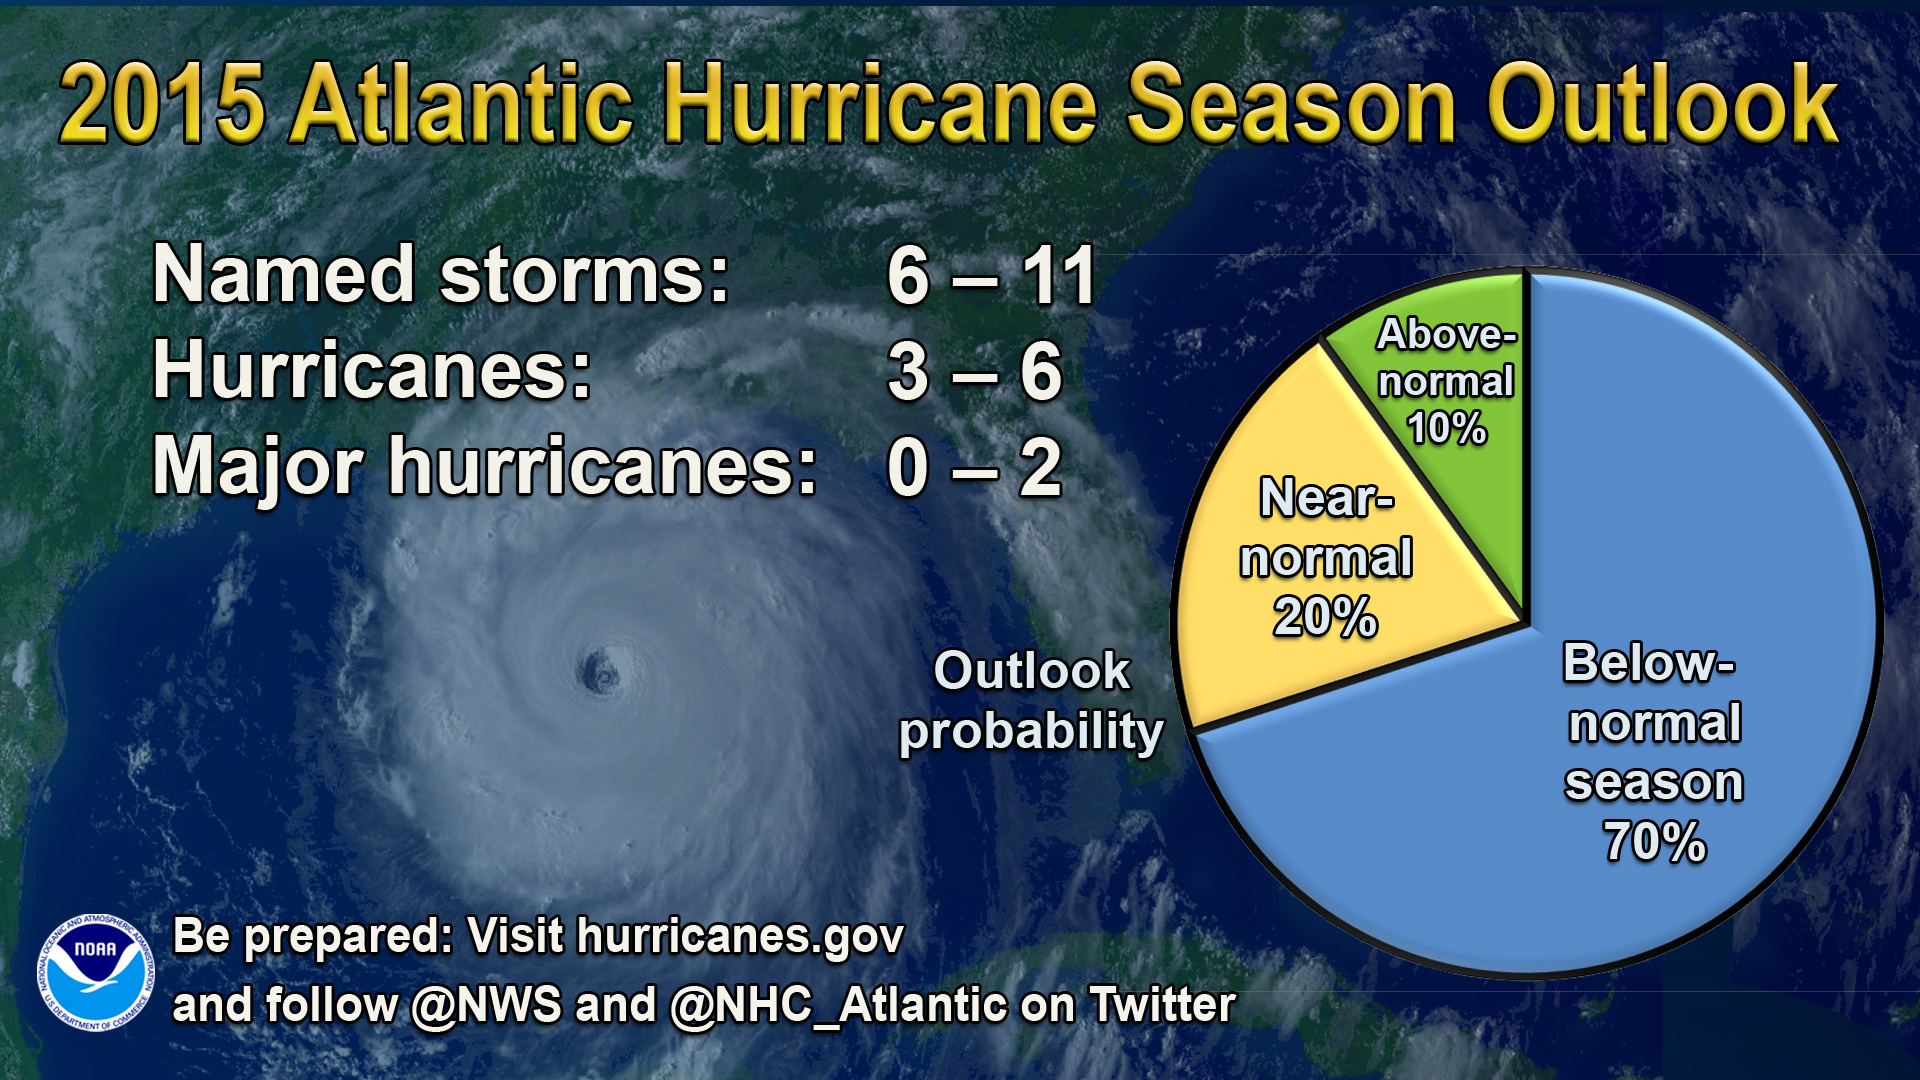 Noaa Forecast A Below Normal Atlantic Hurricane Season Is Likely This Year